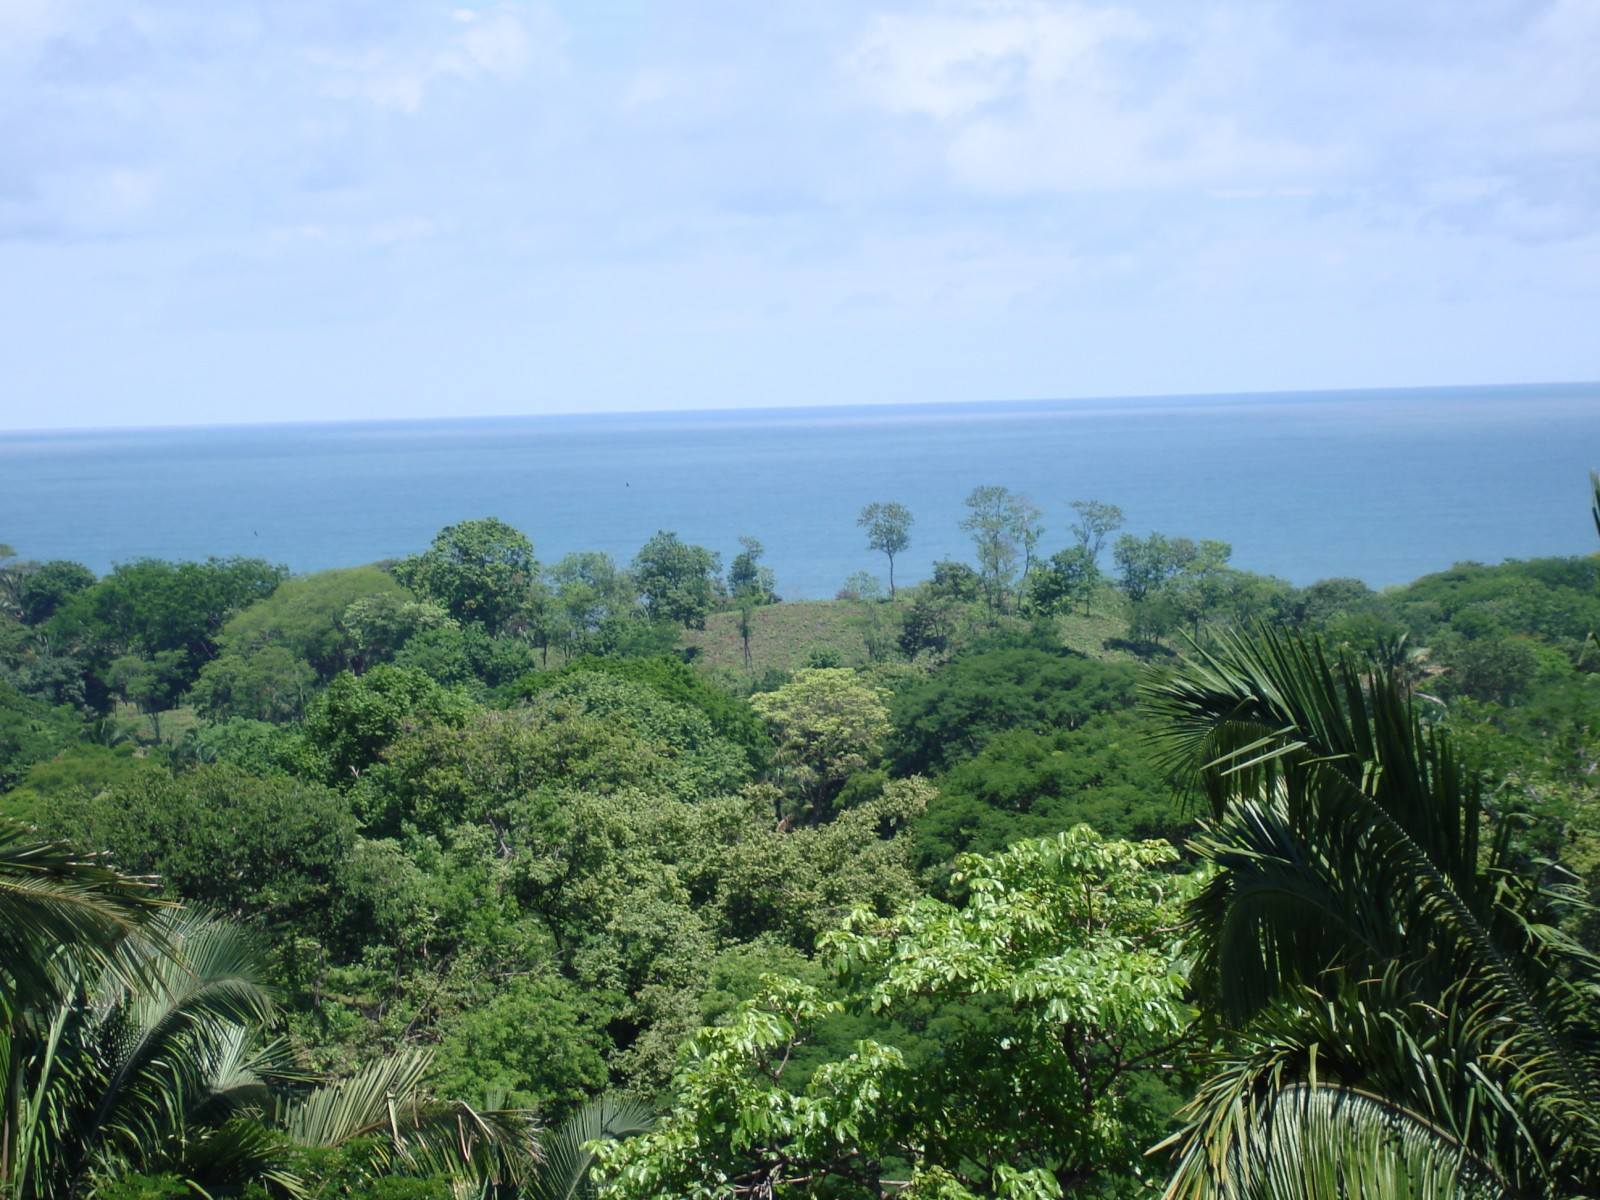 //costaricasol.com/images/jux_real_estate/realties/30/img743_4YQWZB.jpg